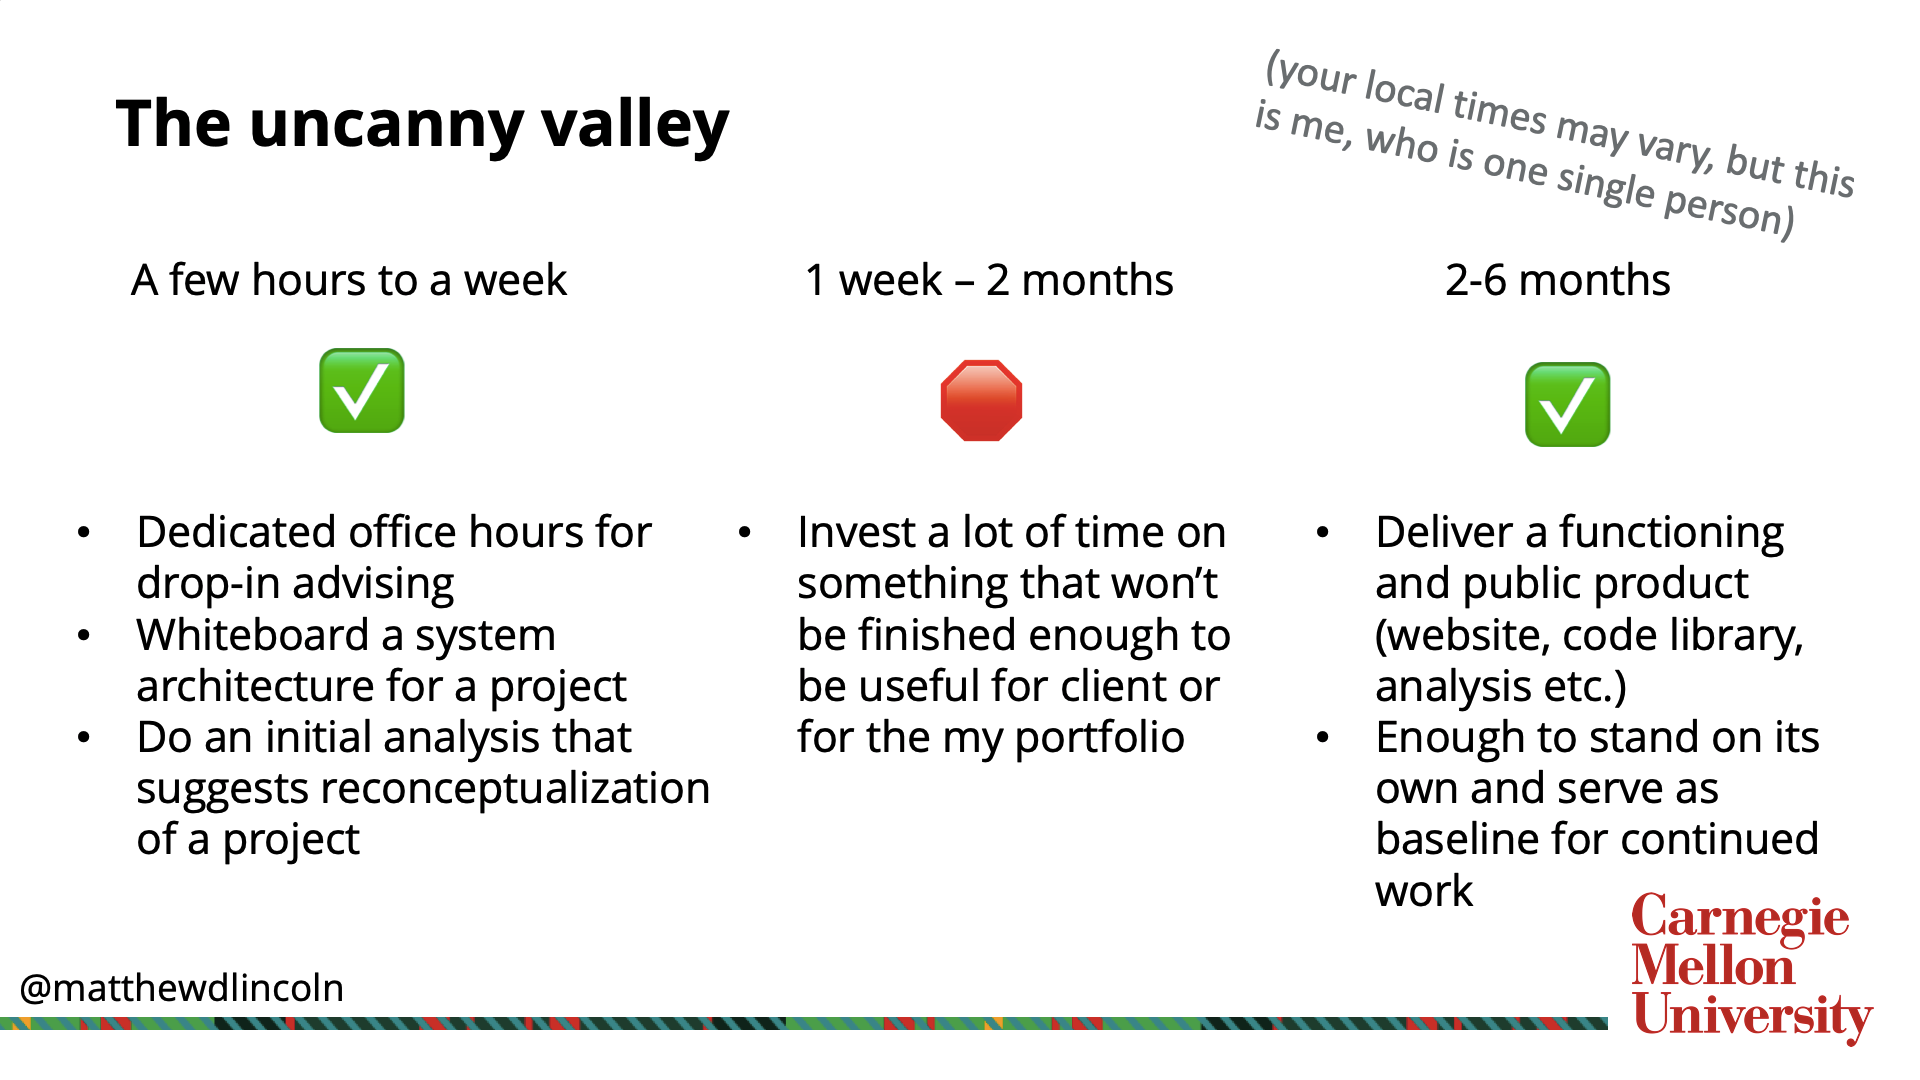 The uncanny valley of DH software work plans